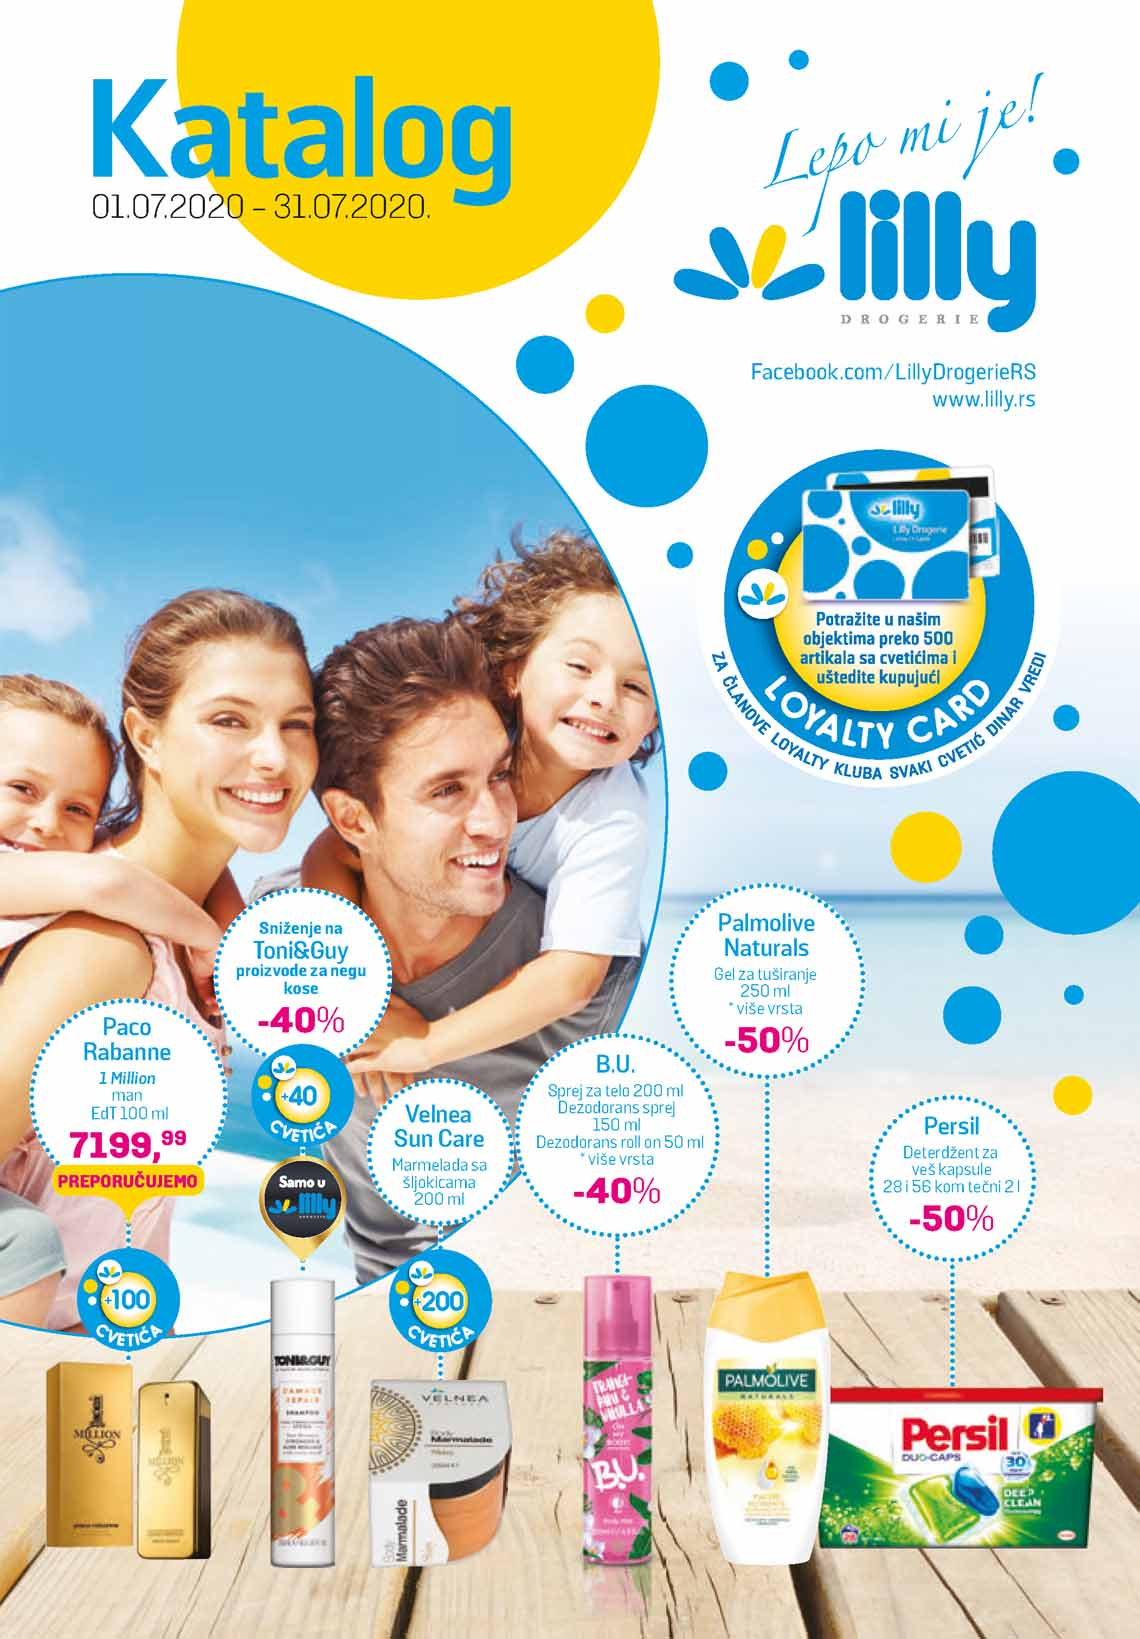 LILLY DROGERIE Katalog - Super akcija do 31.07.2020.